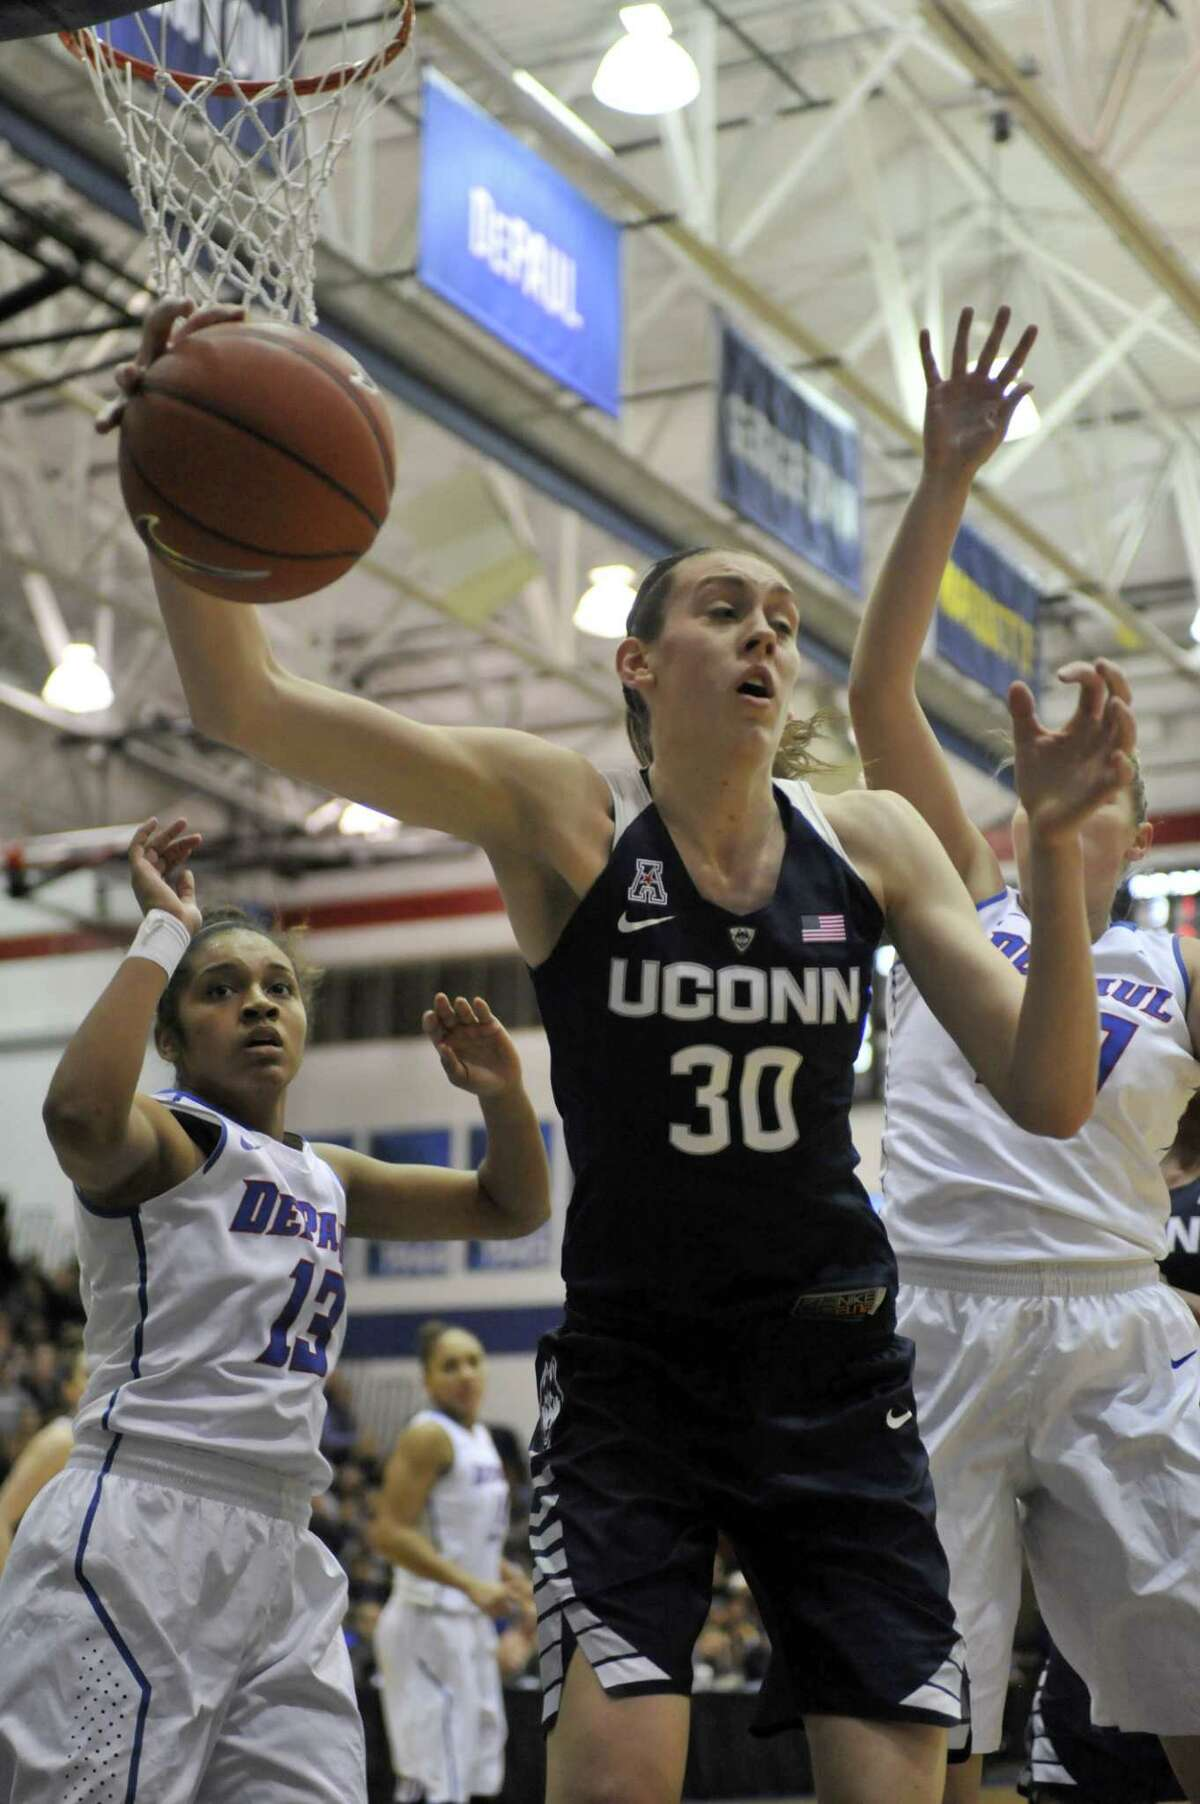 Connecticut's Breanna Stewart (30), grabs the ball against DePaul's Chanise Jenkins (13), and Megan Podkowa (30), during the first half of an NCAA college basketball game Wednesday, Dec. 2, 2015, in Chicago. (AP Photo/Paul Beaty)